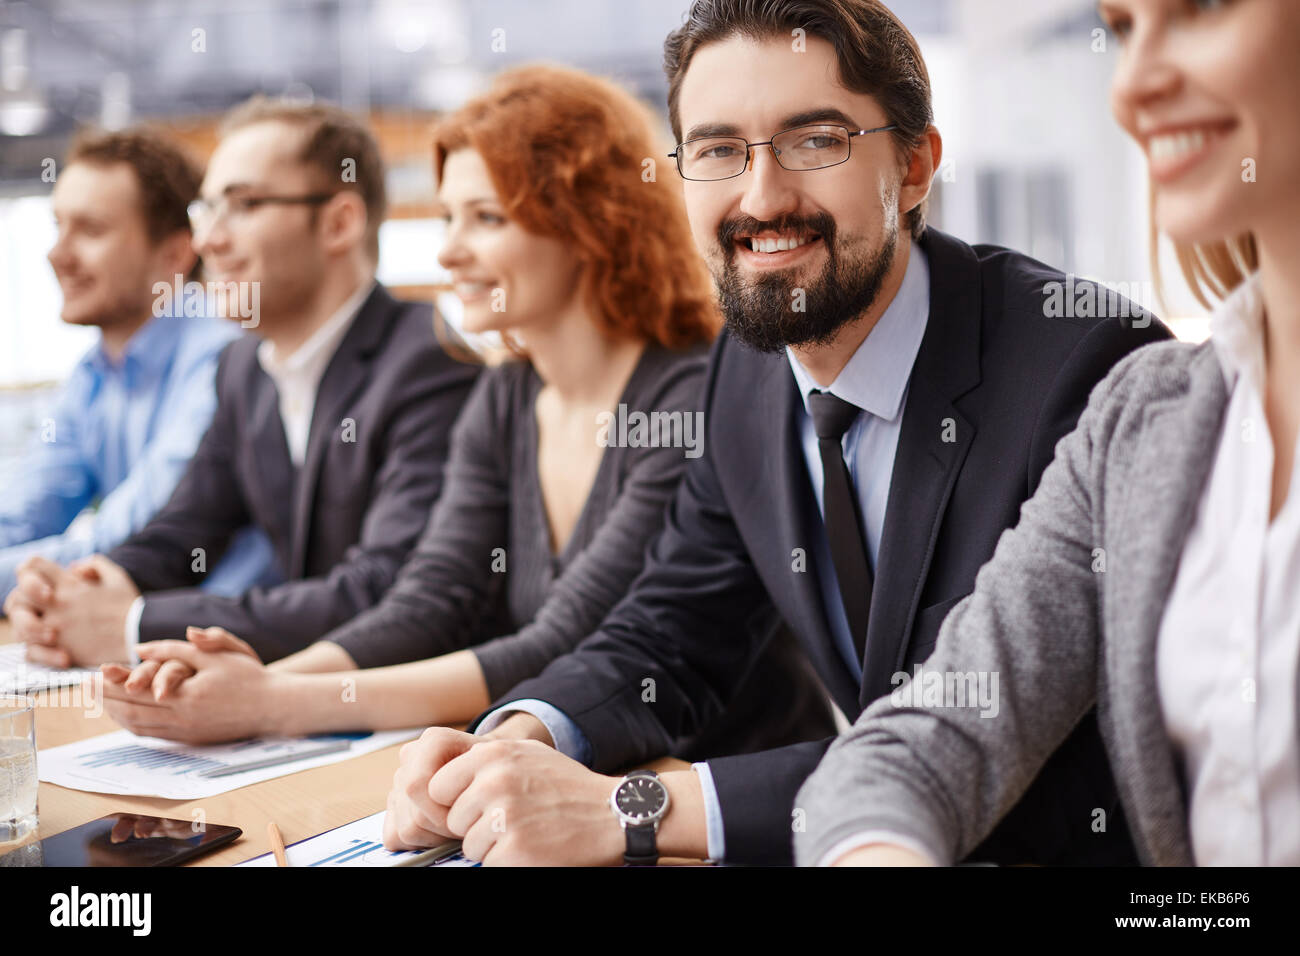 Young businessman sitting among co-workers and looking at camera at conference - Stock Image